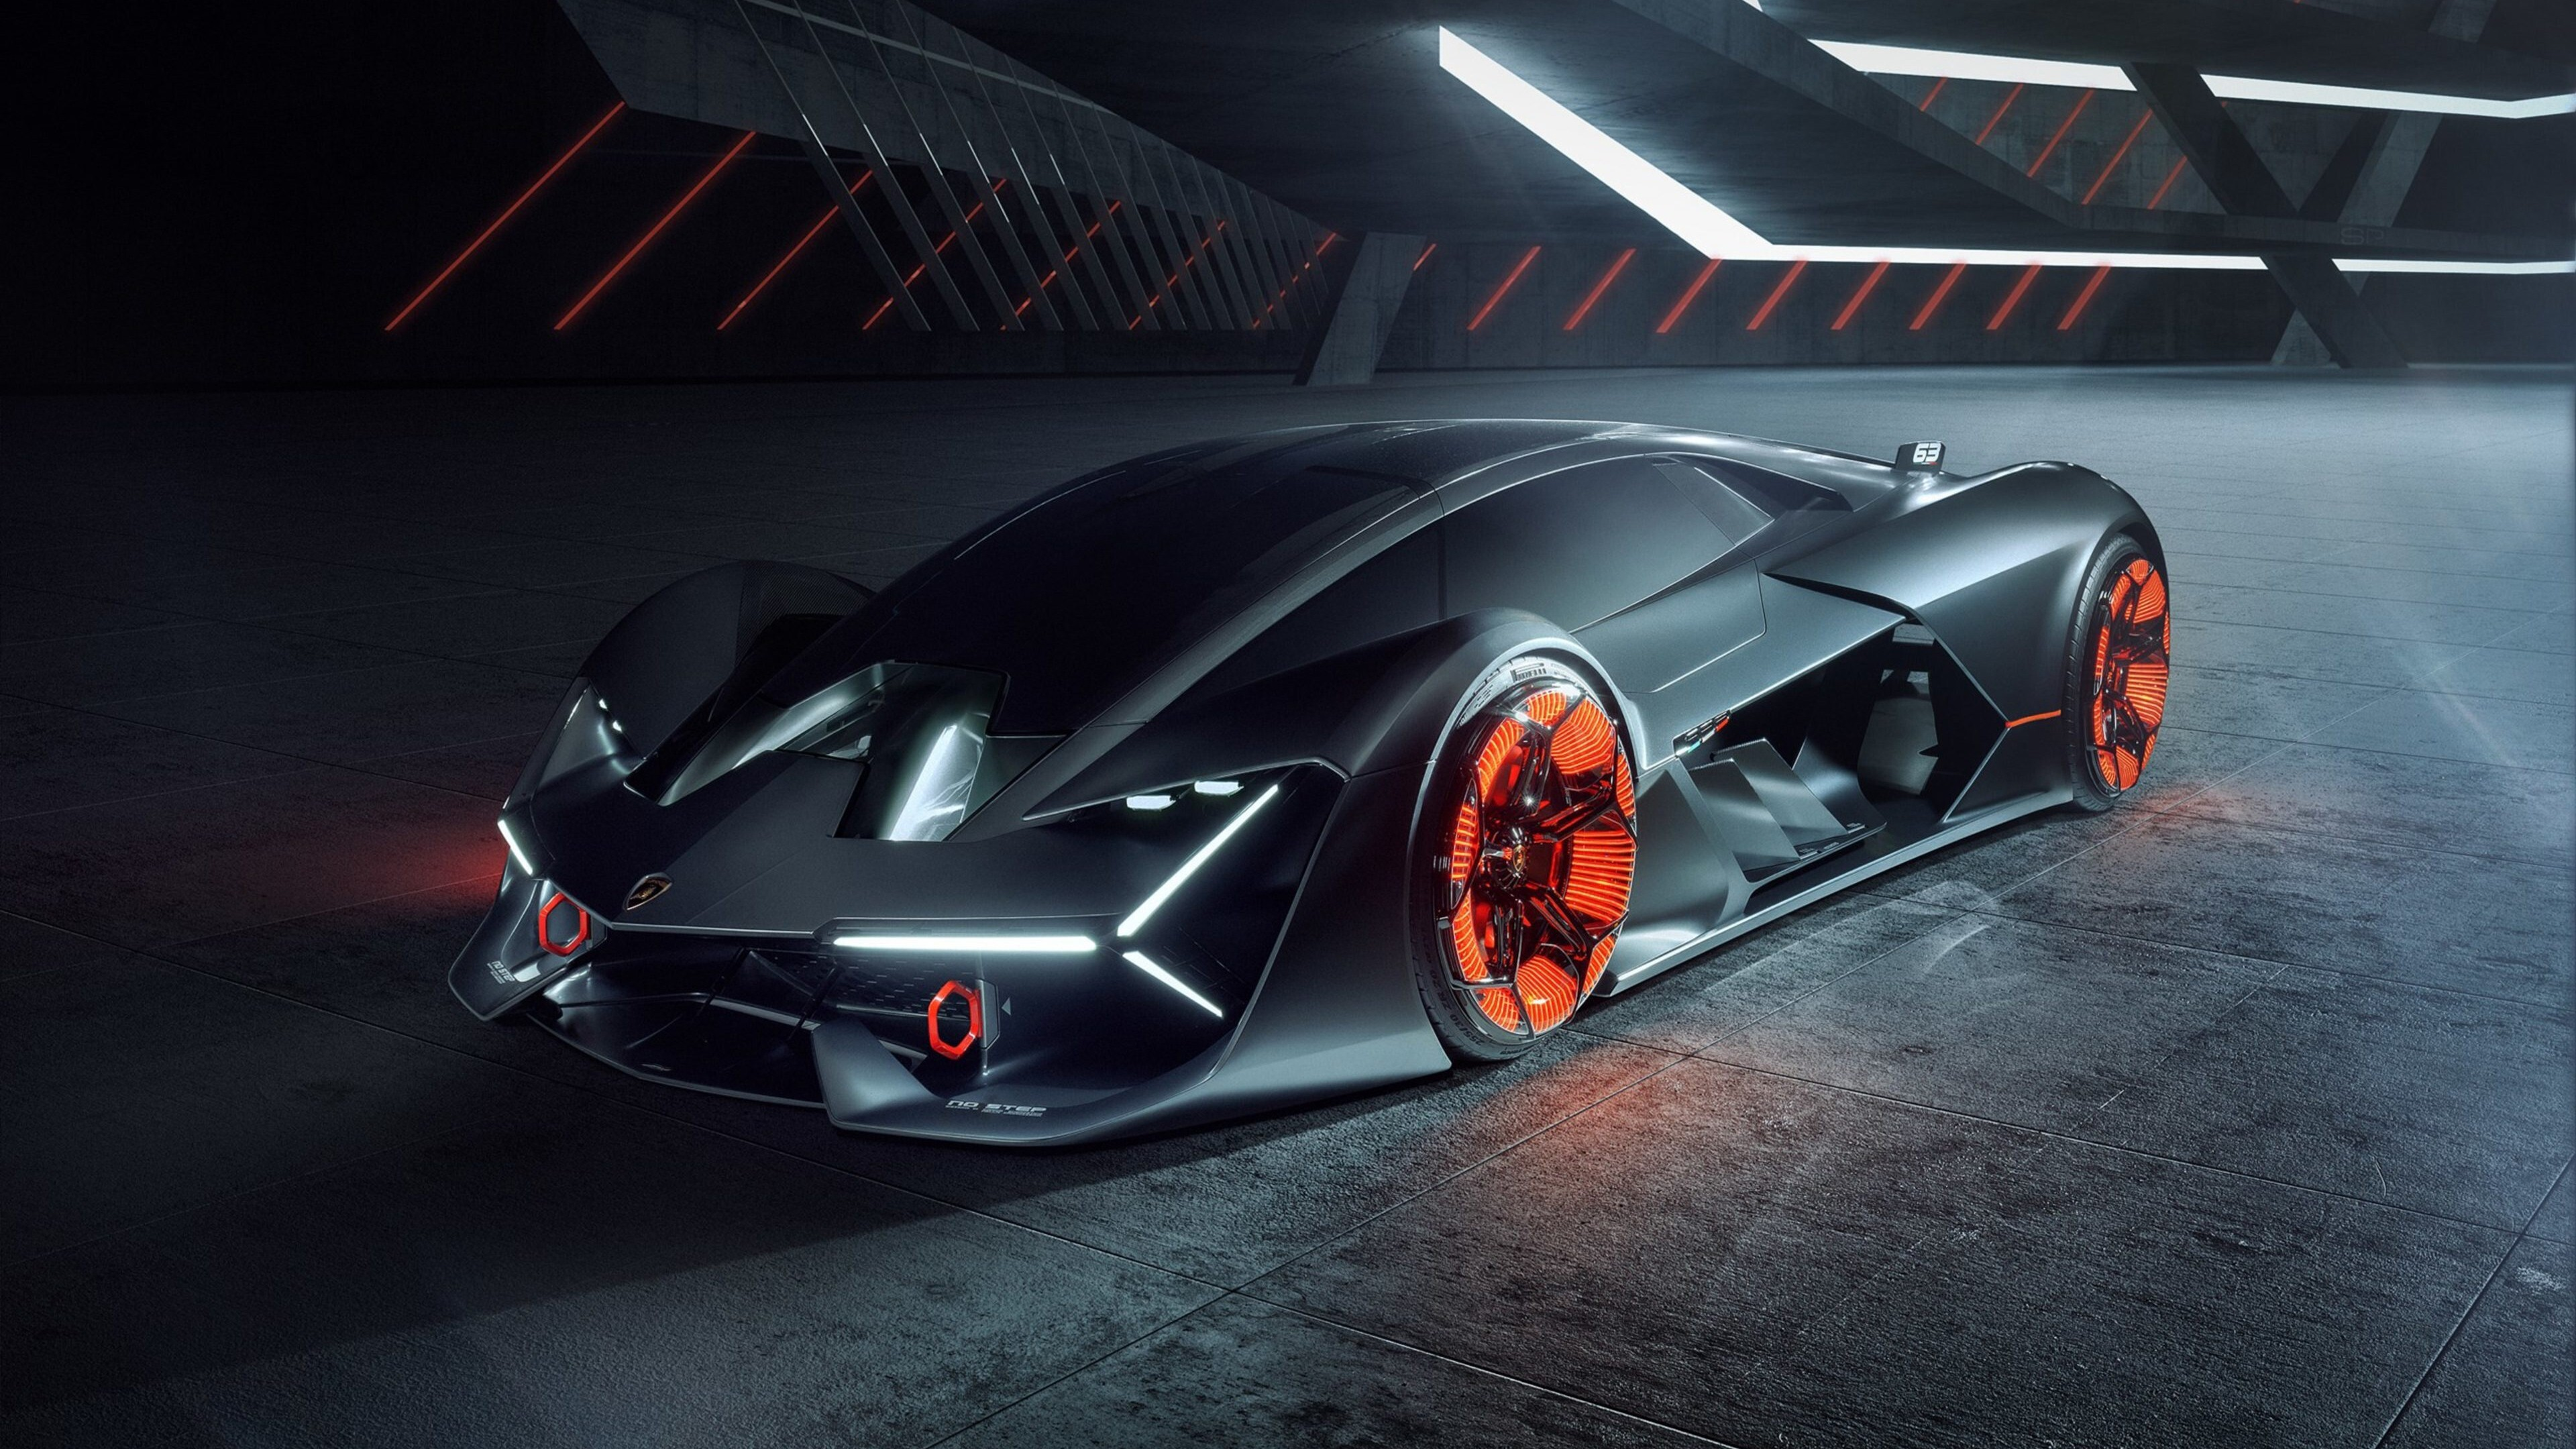 2019 Superb Car 4K Pic of Lamborghini Terzo Millennio | HD ...